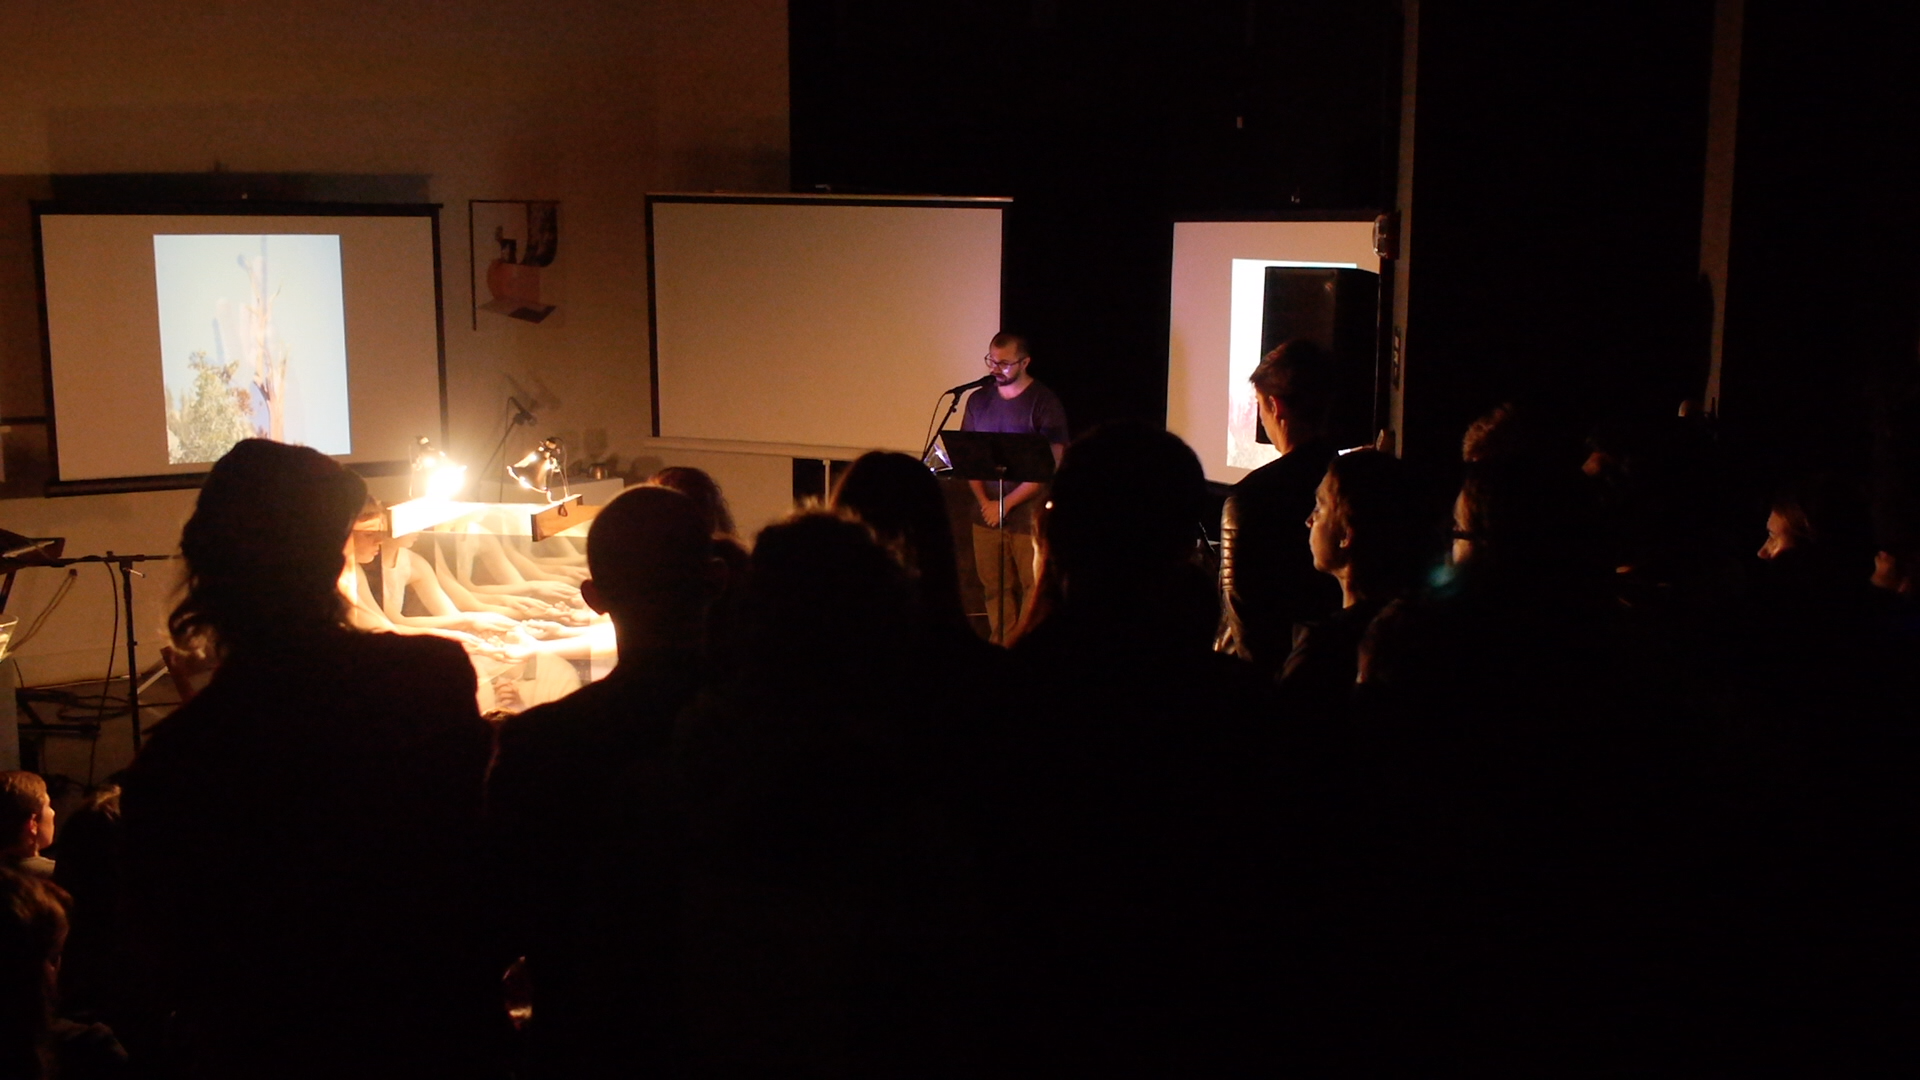 Performance Still with MOCREP Pro Arts Gallery Oakland, CA 27 April 2018